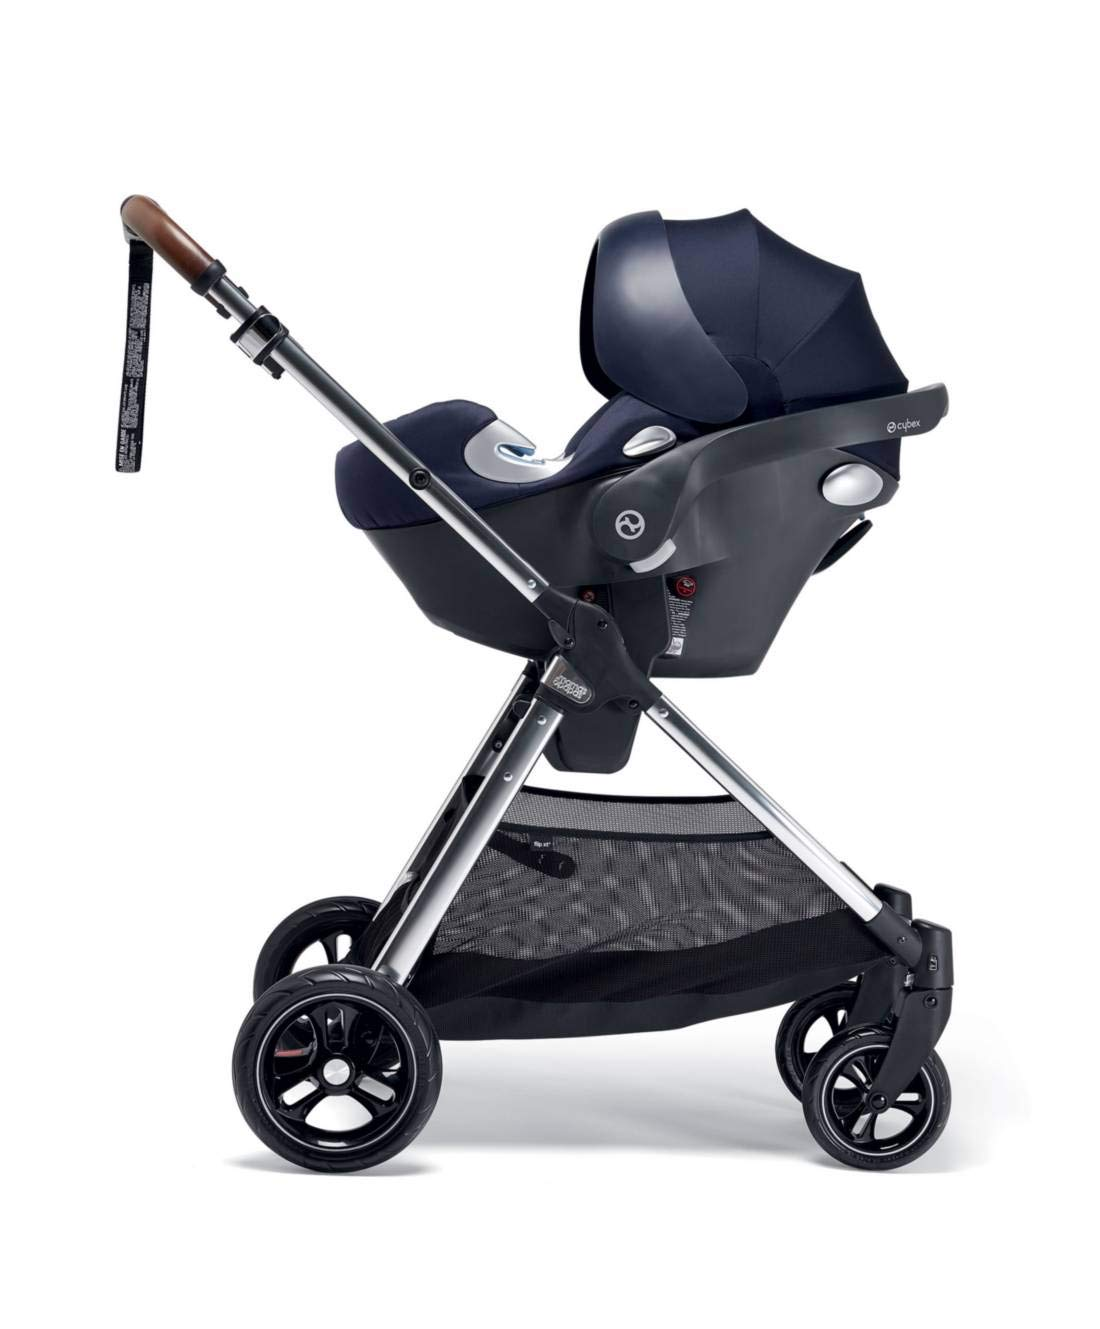 Mamas & Papas Flip XT3 Pushchair - Dark Navy Mamas & Papas PUSHCHAIR - Our lightweight Flip XT3 pushchair is perfect for handling busy streets FOLDABLE - This pushchair can be stored away quick and compact with the easy one handed fold FEATURES - The lie-flat position supports natural, healthy sleep while the UPF 50+ large hood & air vent provides cooling protection from the sun 6